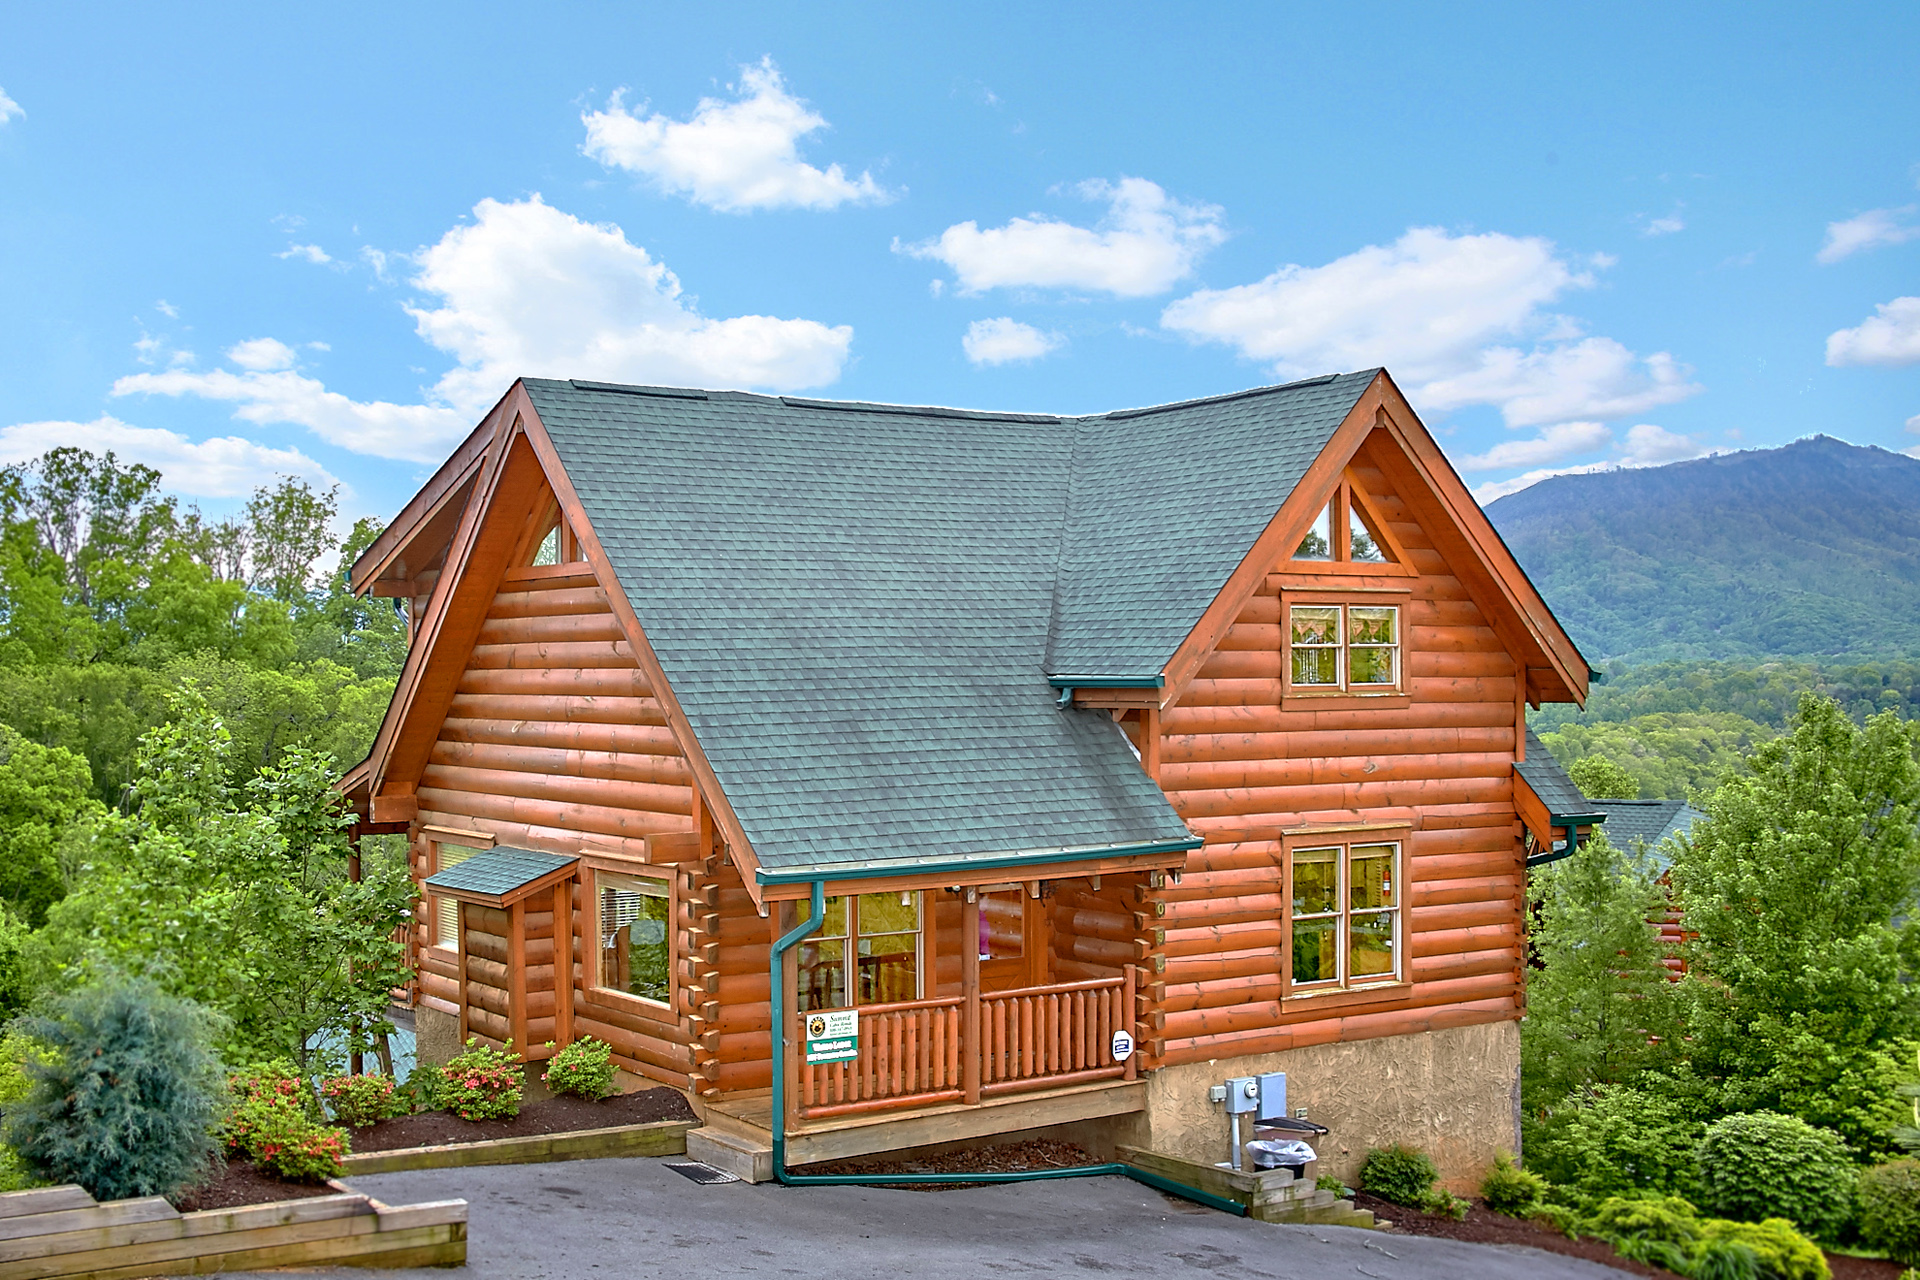 Log homes and cabins for sale in pigeon forge tn for Houses for sale with suites